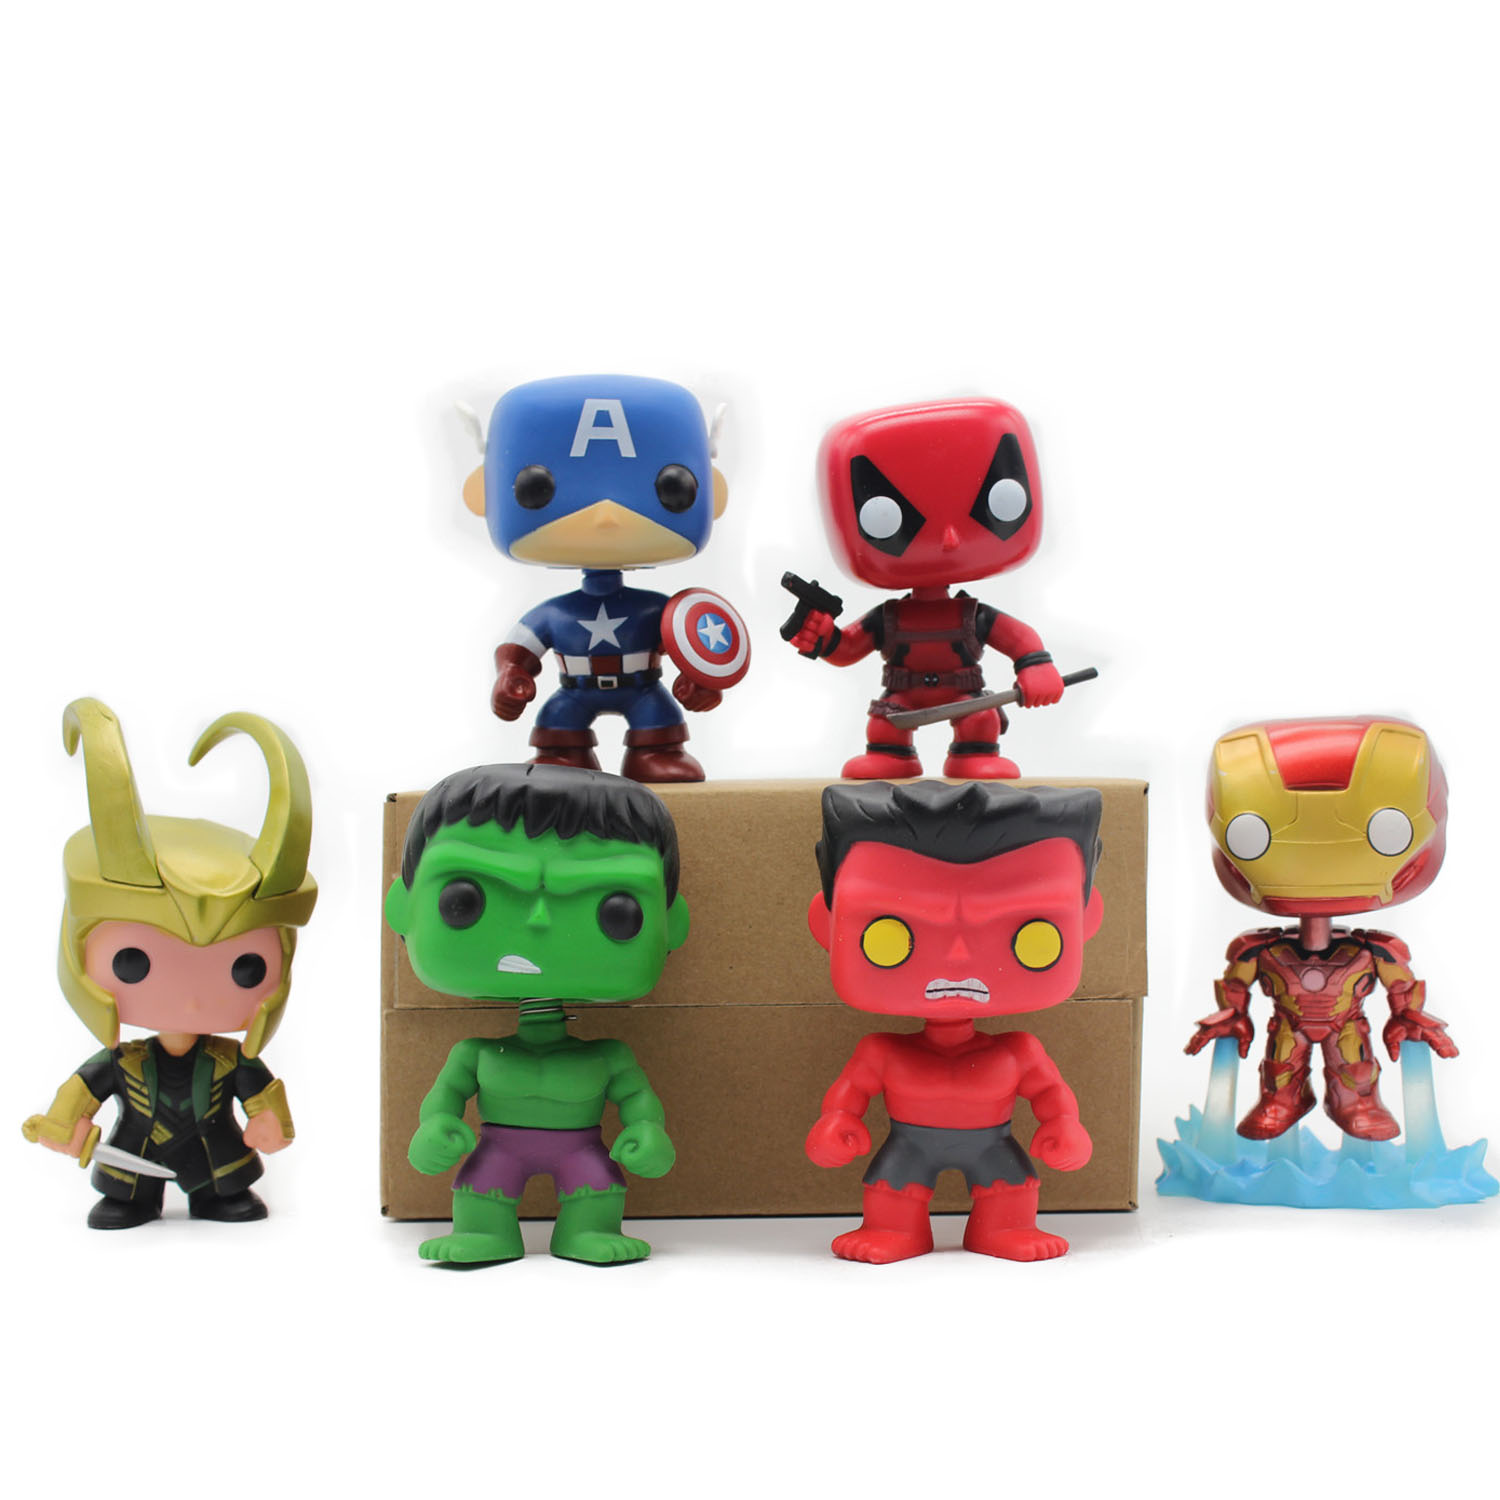 Chanycore Funko pop Bobble Head Figure Marvel Avengers Deadpool Red Hulk LOKI Captian America Iron Man PVC Vinyl Figure Toy gift  funko pop marvel the hulk no 08 red hulk no 31 iron man vinly bobble head pvc action figure collectible model toy gift for kids